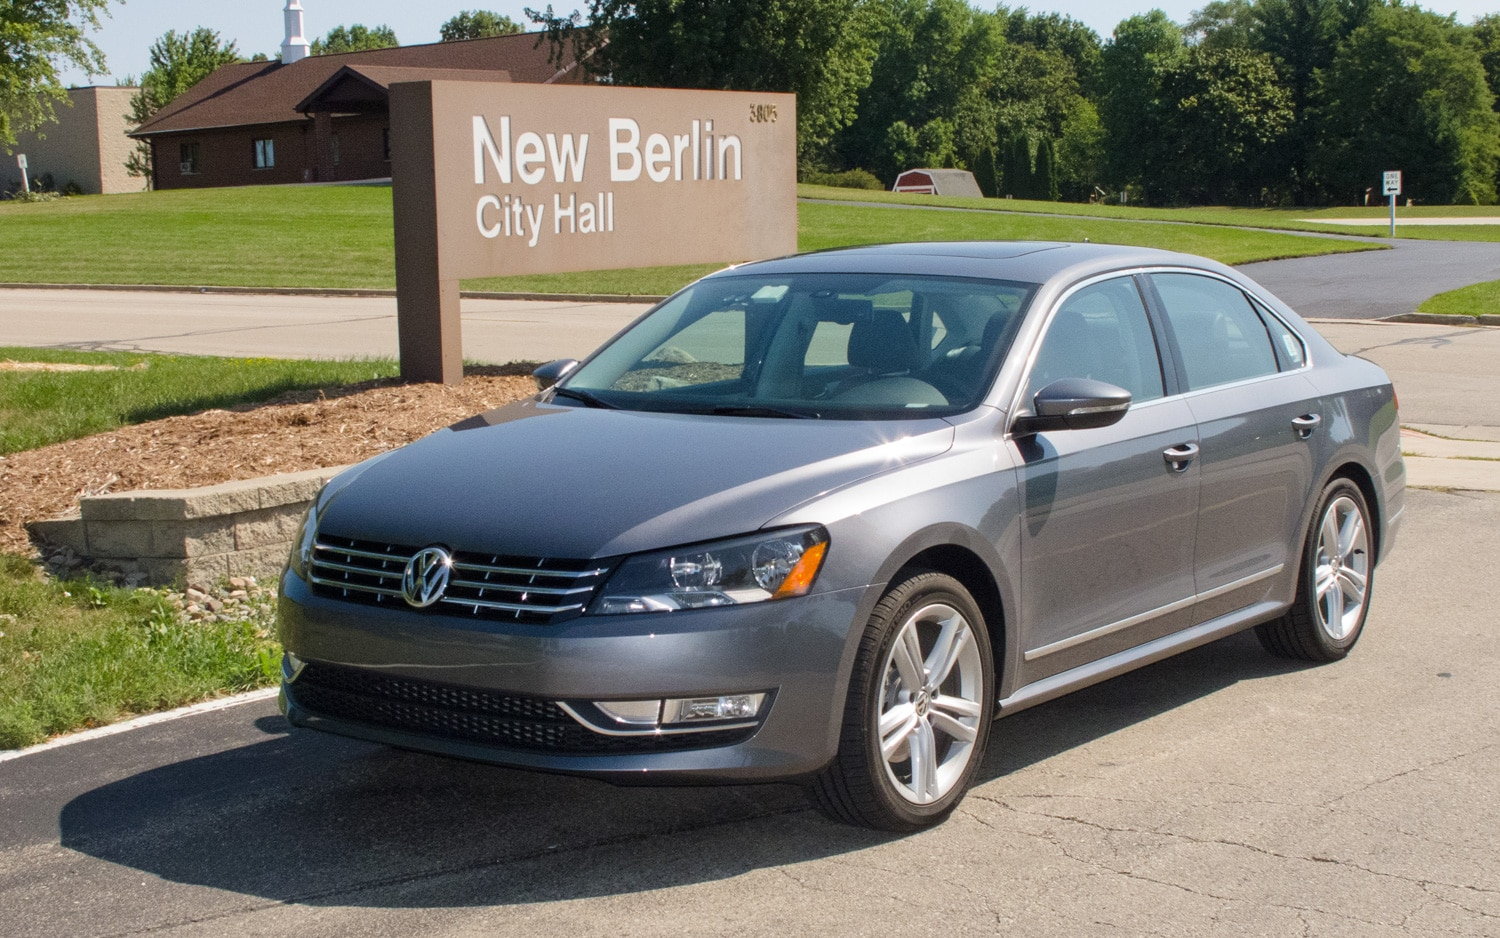 2012 Volkswagen Passat SE TDI Front Left Side View 21